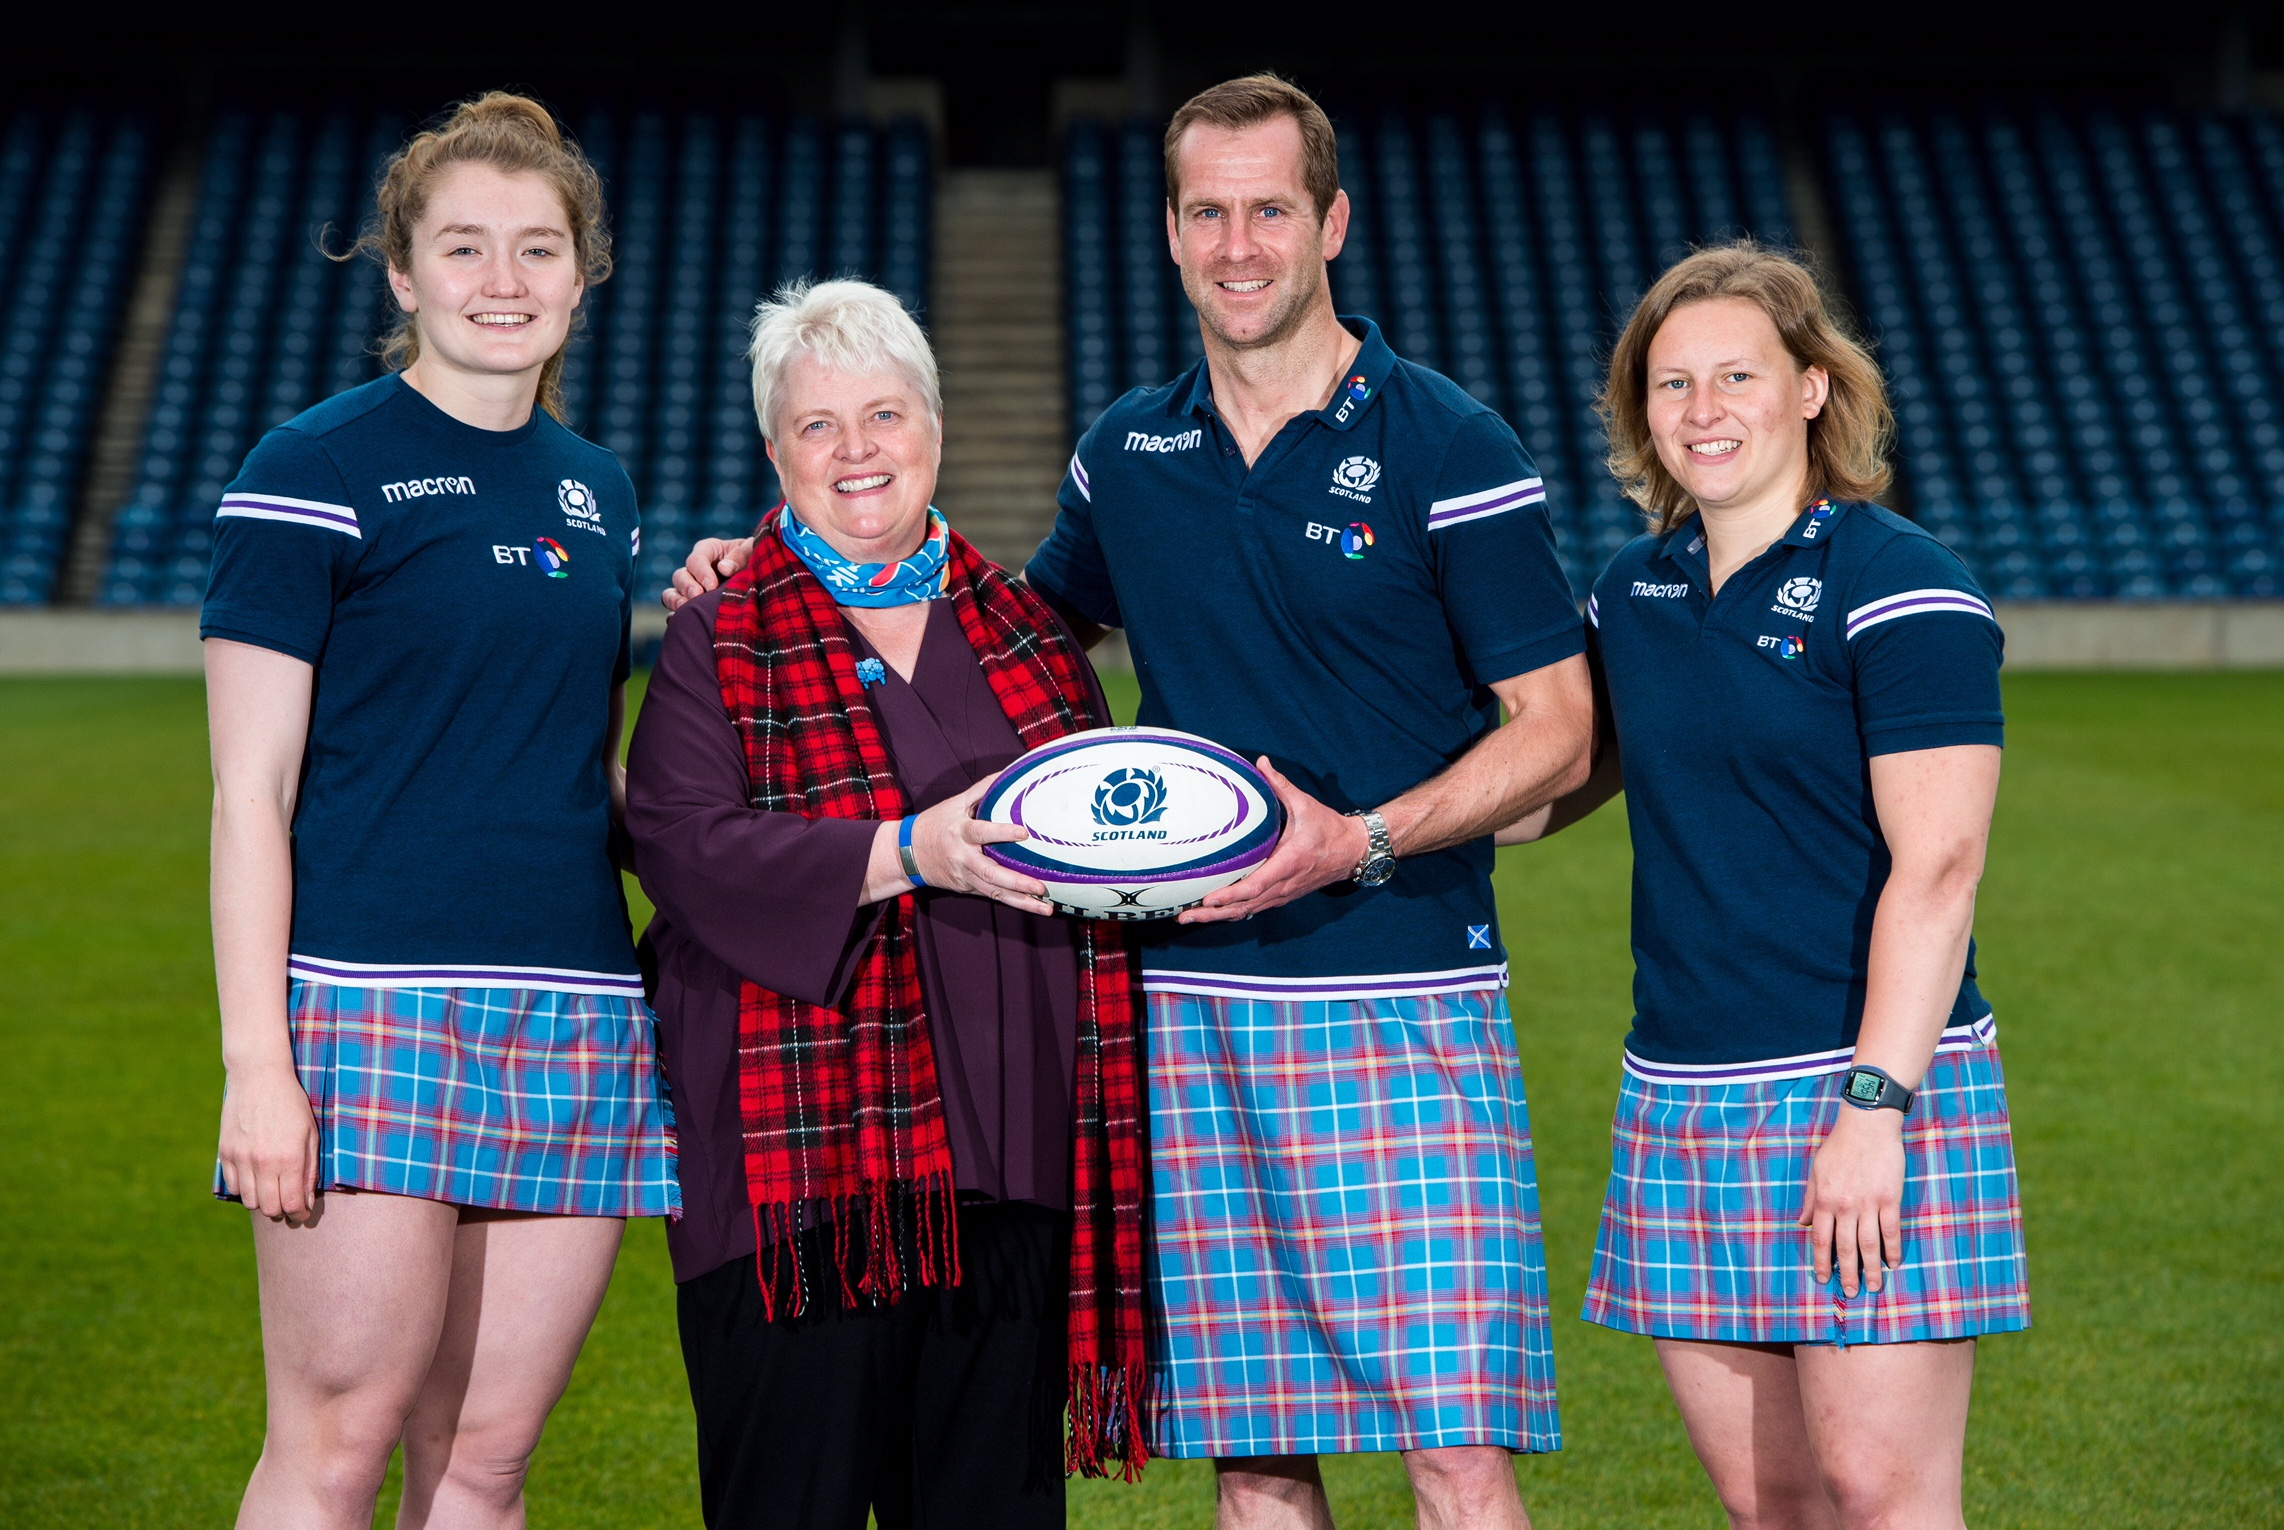 Scottish Rugby get in training for the Kiltwalk